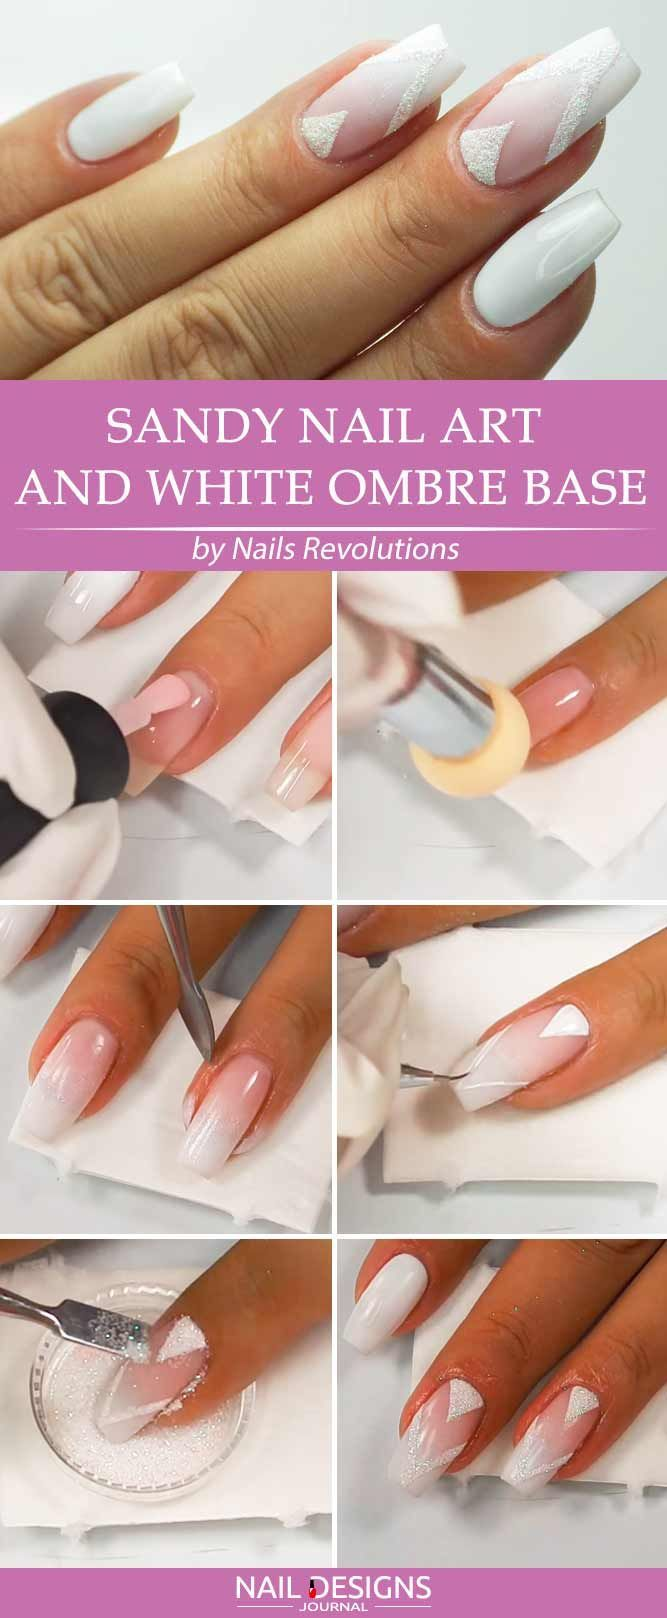 Aeropuffing Nail Art To Try On Your Own Naildesignsjournal Com Trendy Nail Art Nail Art Ombre Gel Nail Extensions